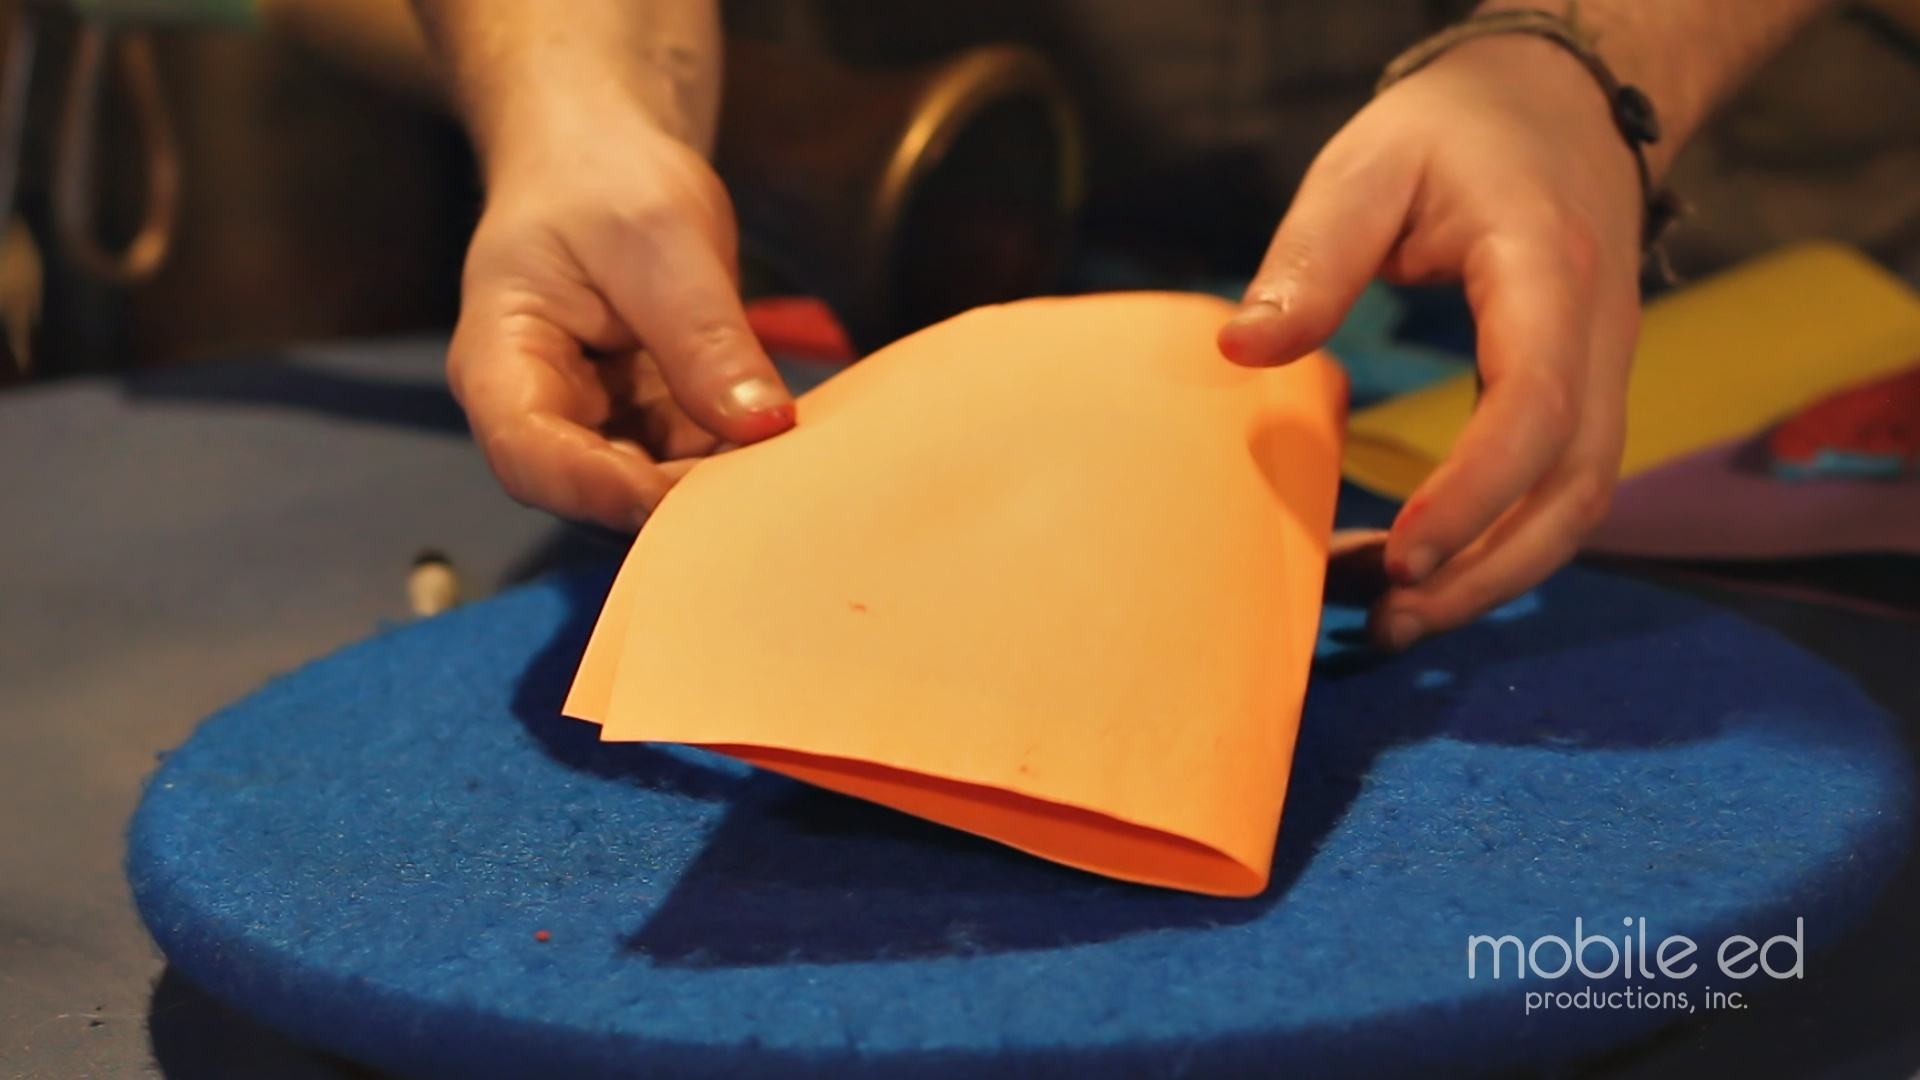 Fold the paper to make a card | Handy Dan the Junkyard Man | Mobile Ed Productions